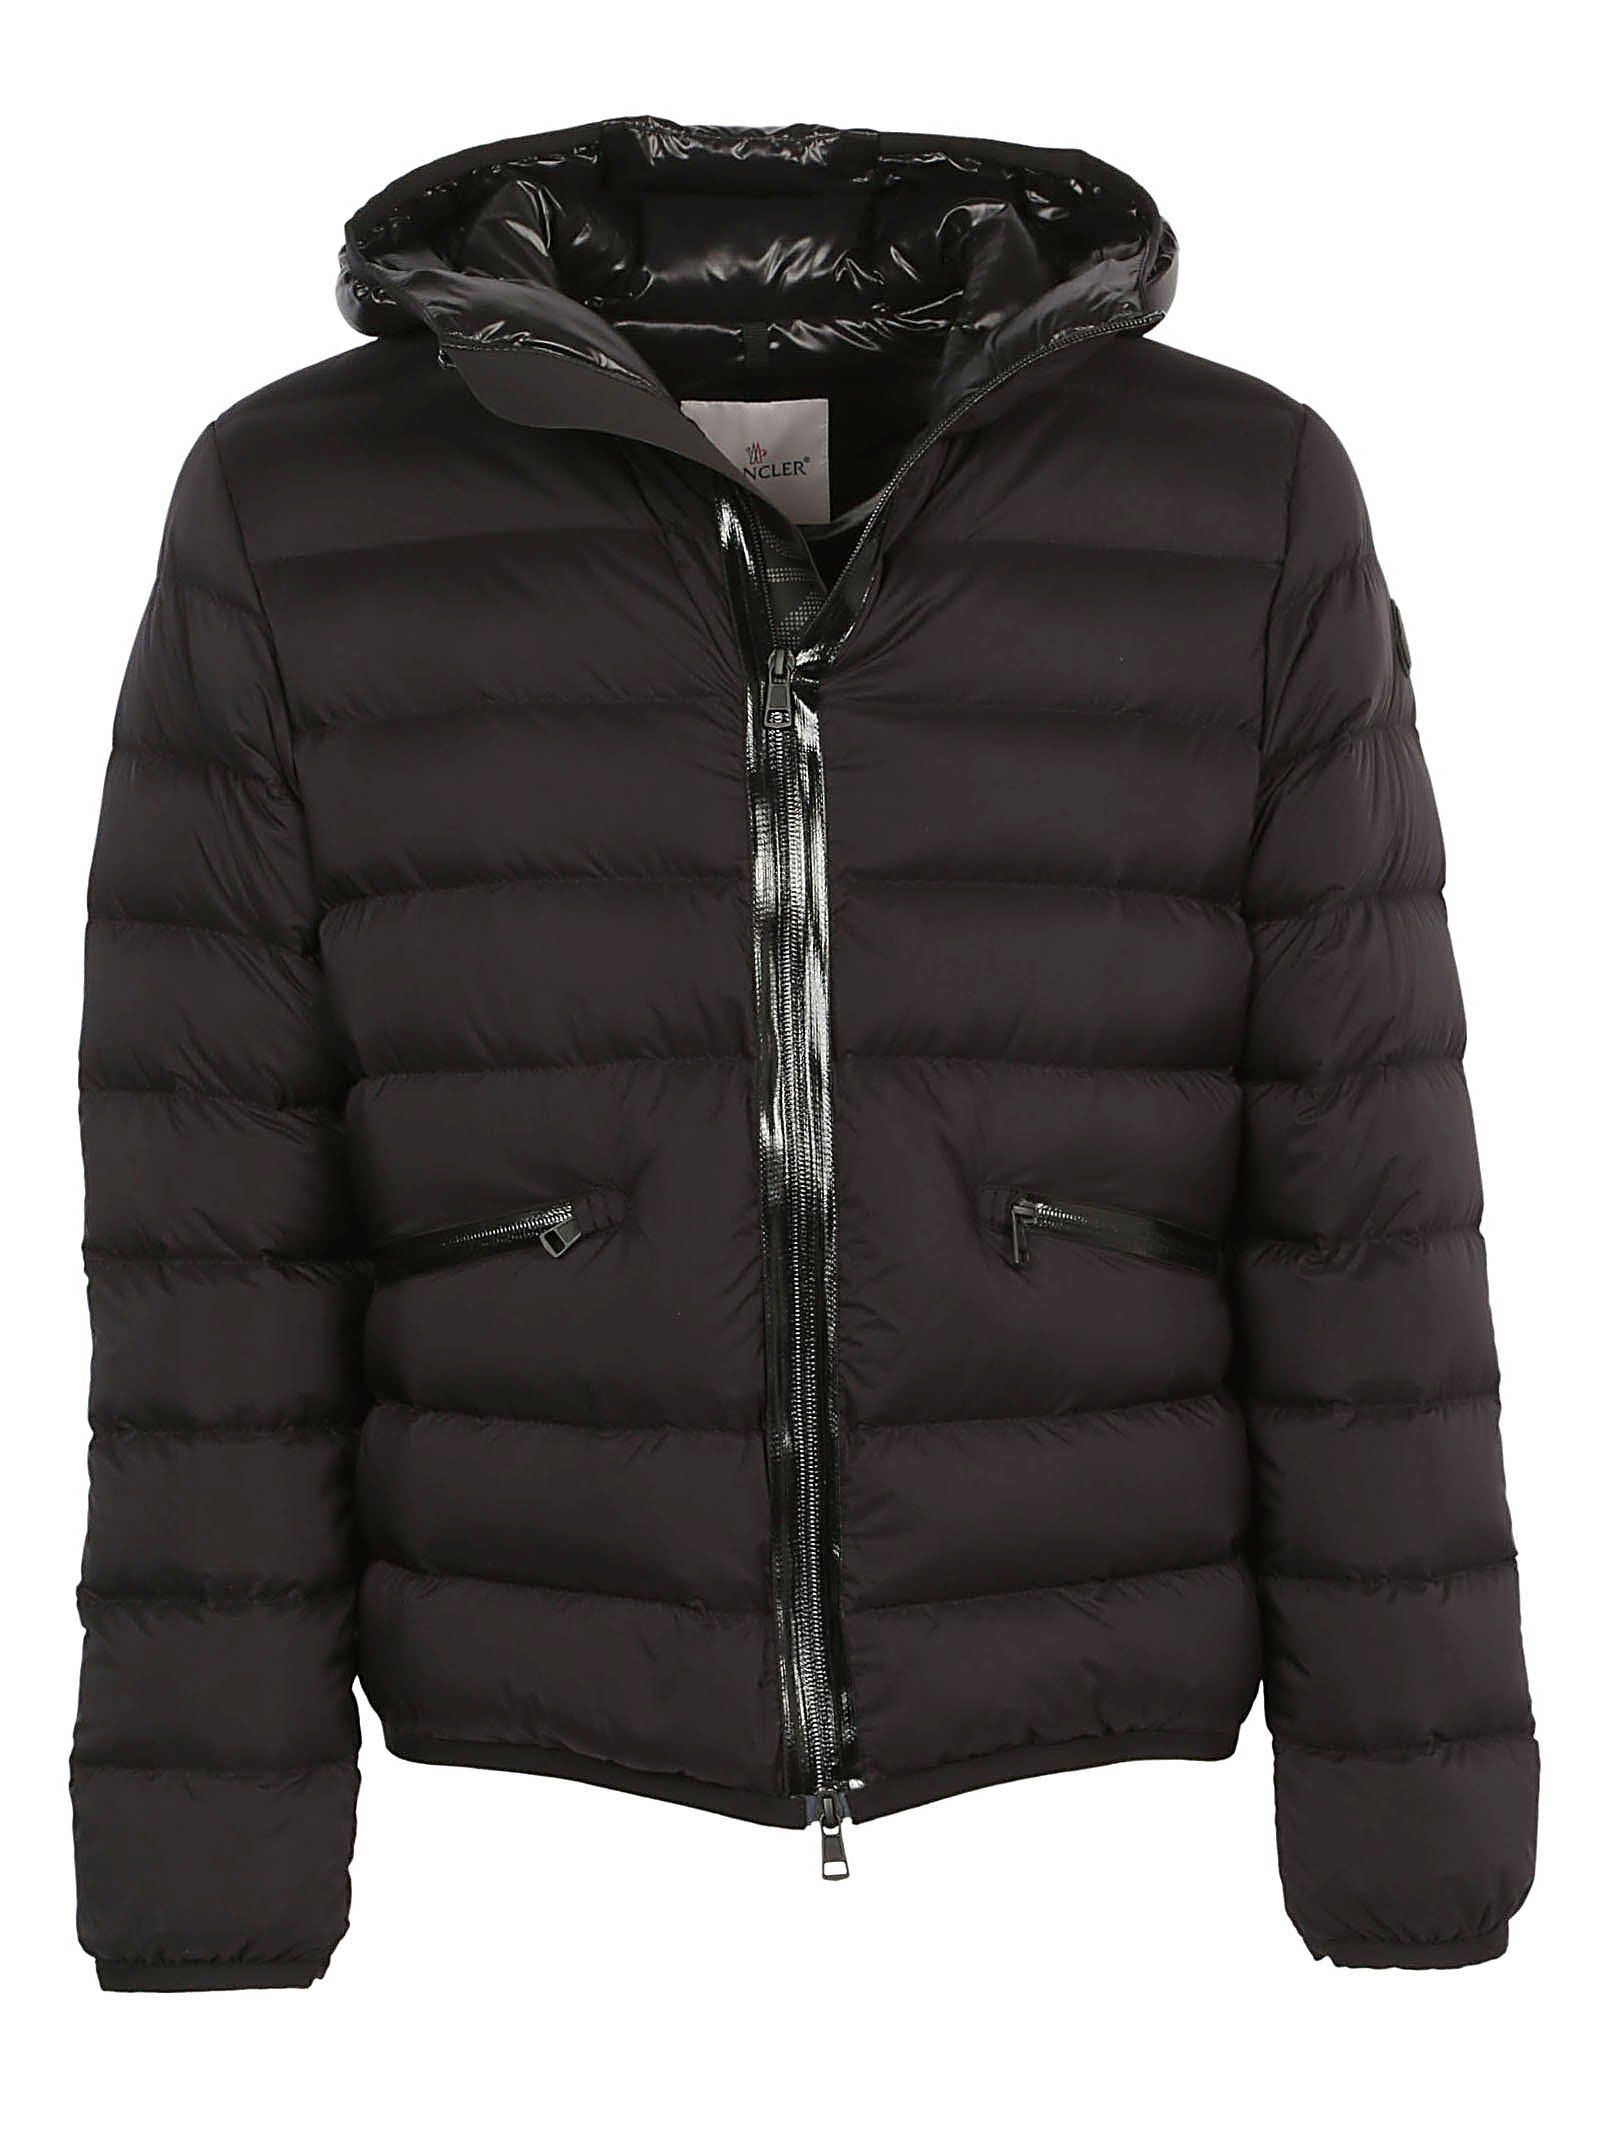 Moncler Achard Down Jacket In Black | Jackets, Down jacket